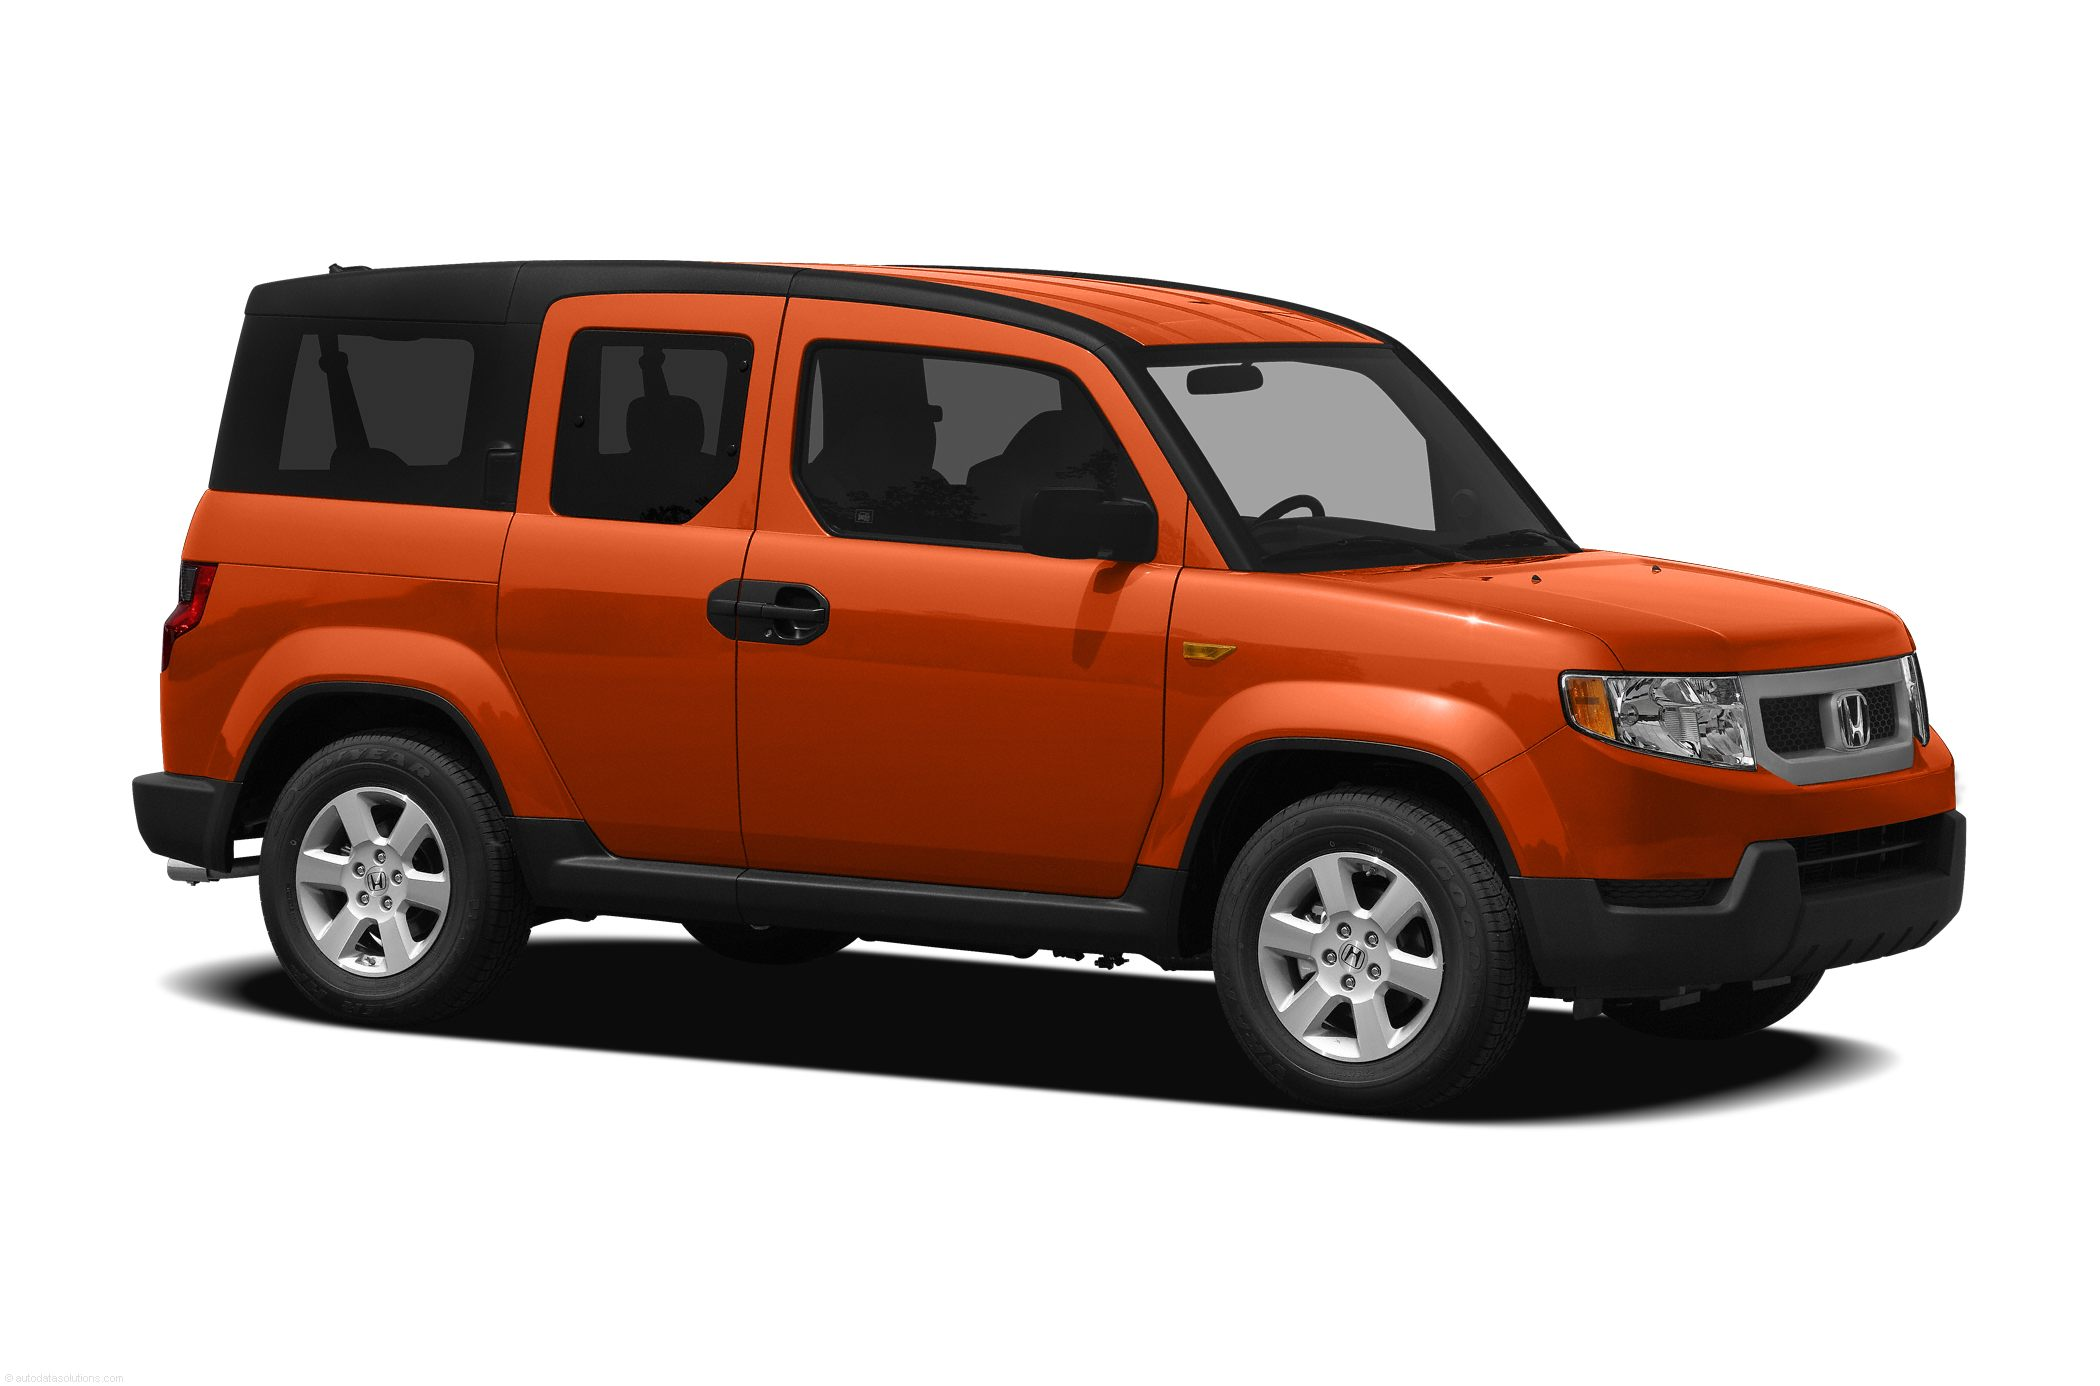 2018 Honda Element photo - 4